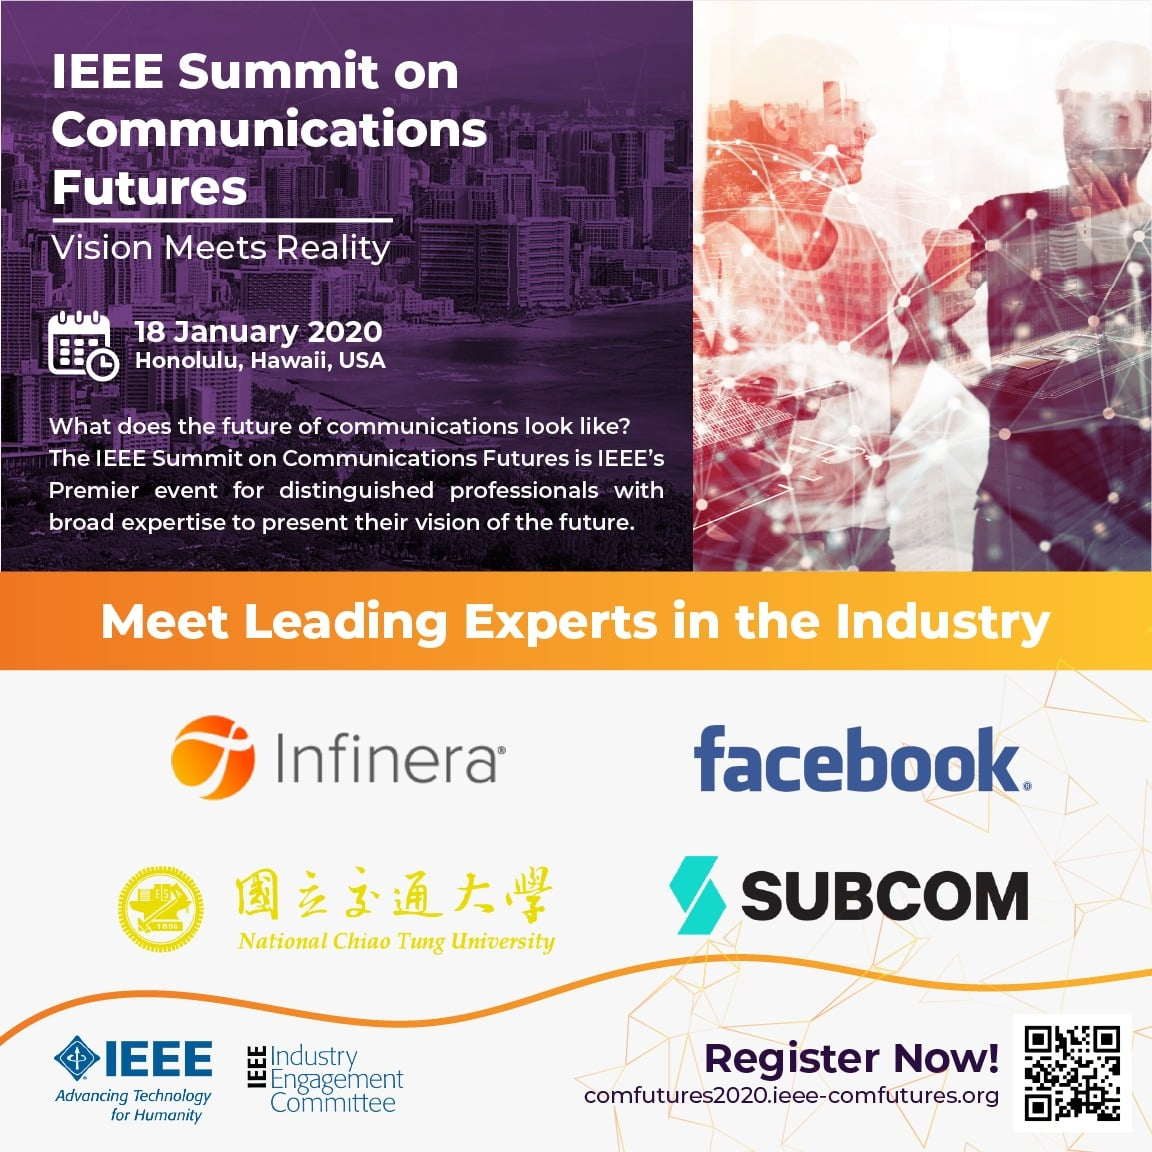 IEEE Summit on Communications Futures